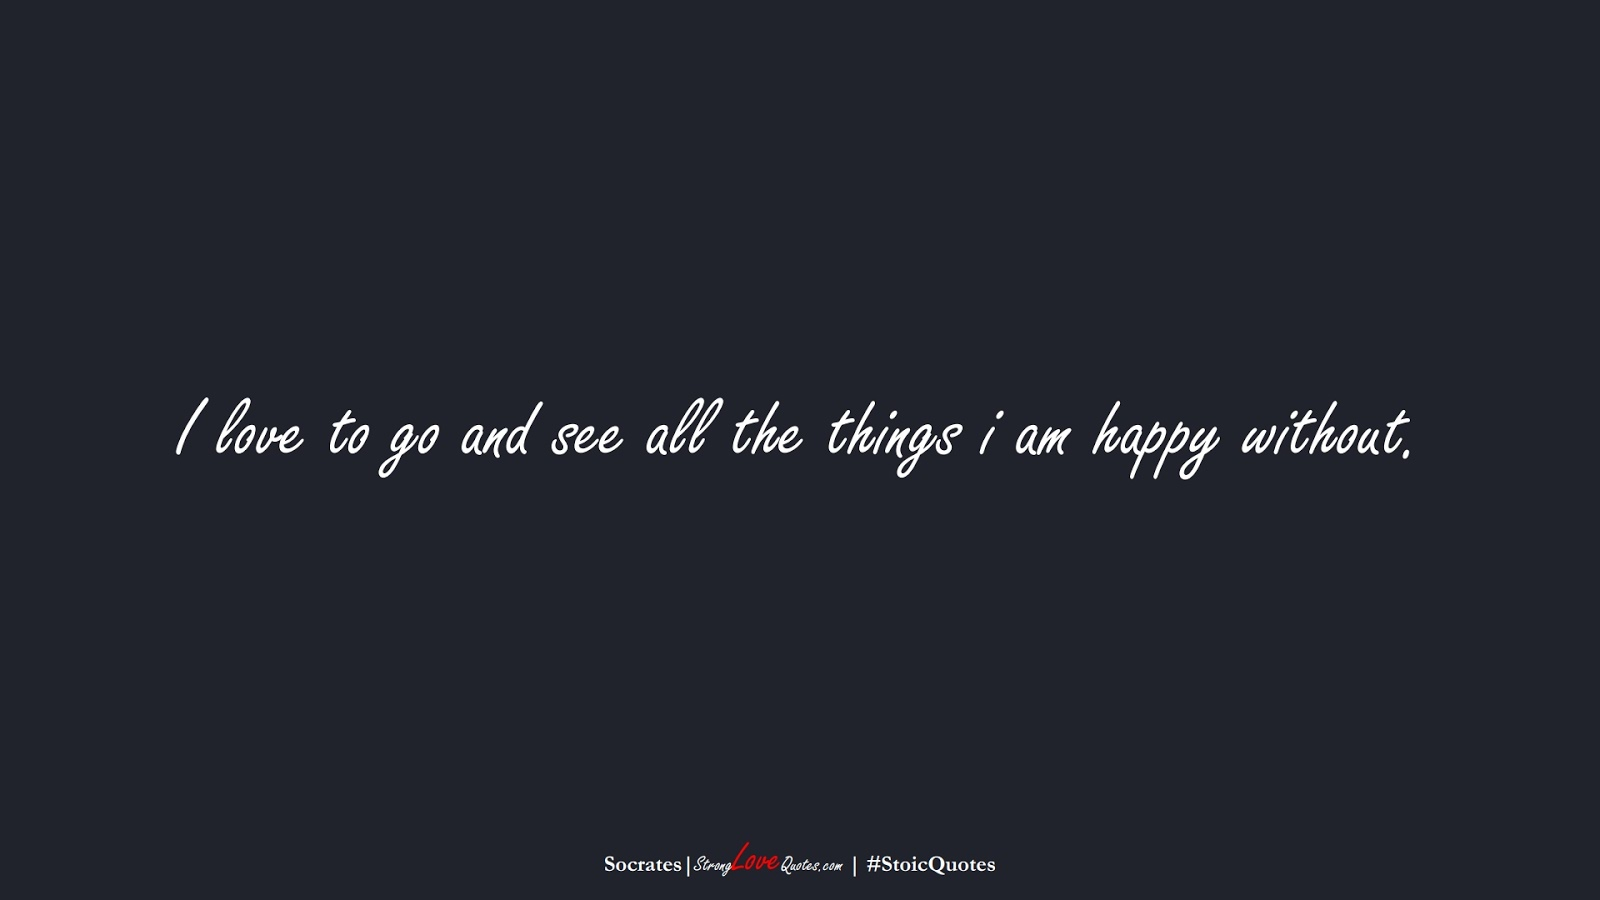 I love to go and see all the things i am happy without. (Socrates);  #StoicQuotes